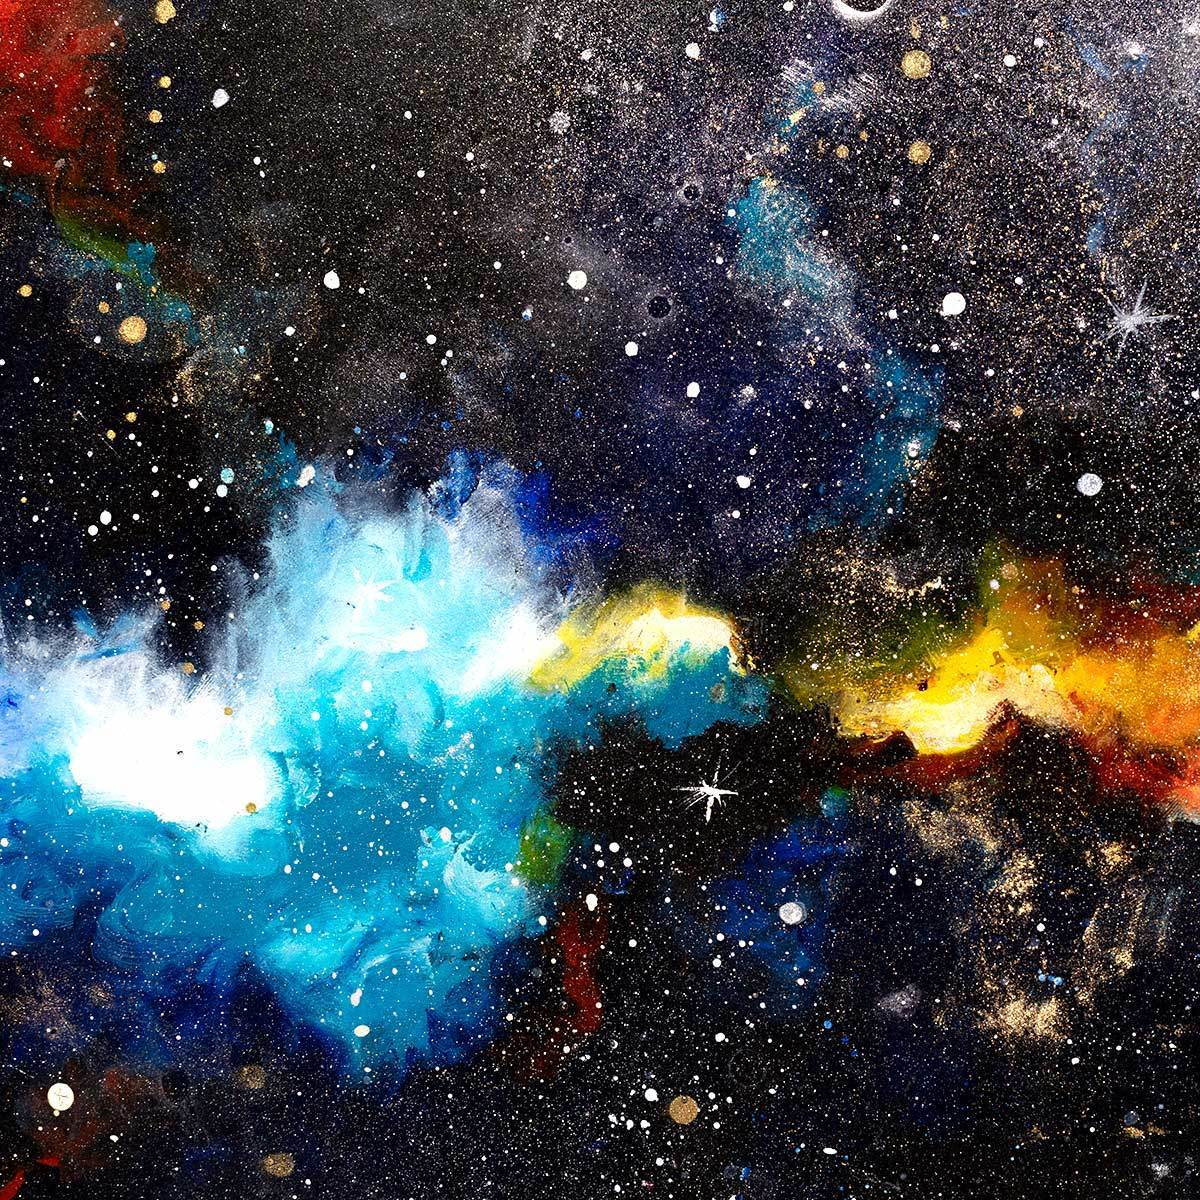 Intergalactic Space - Original - SOLD